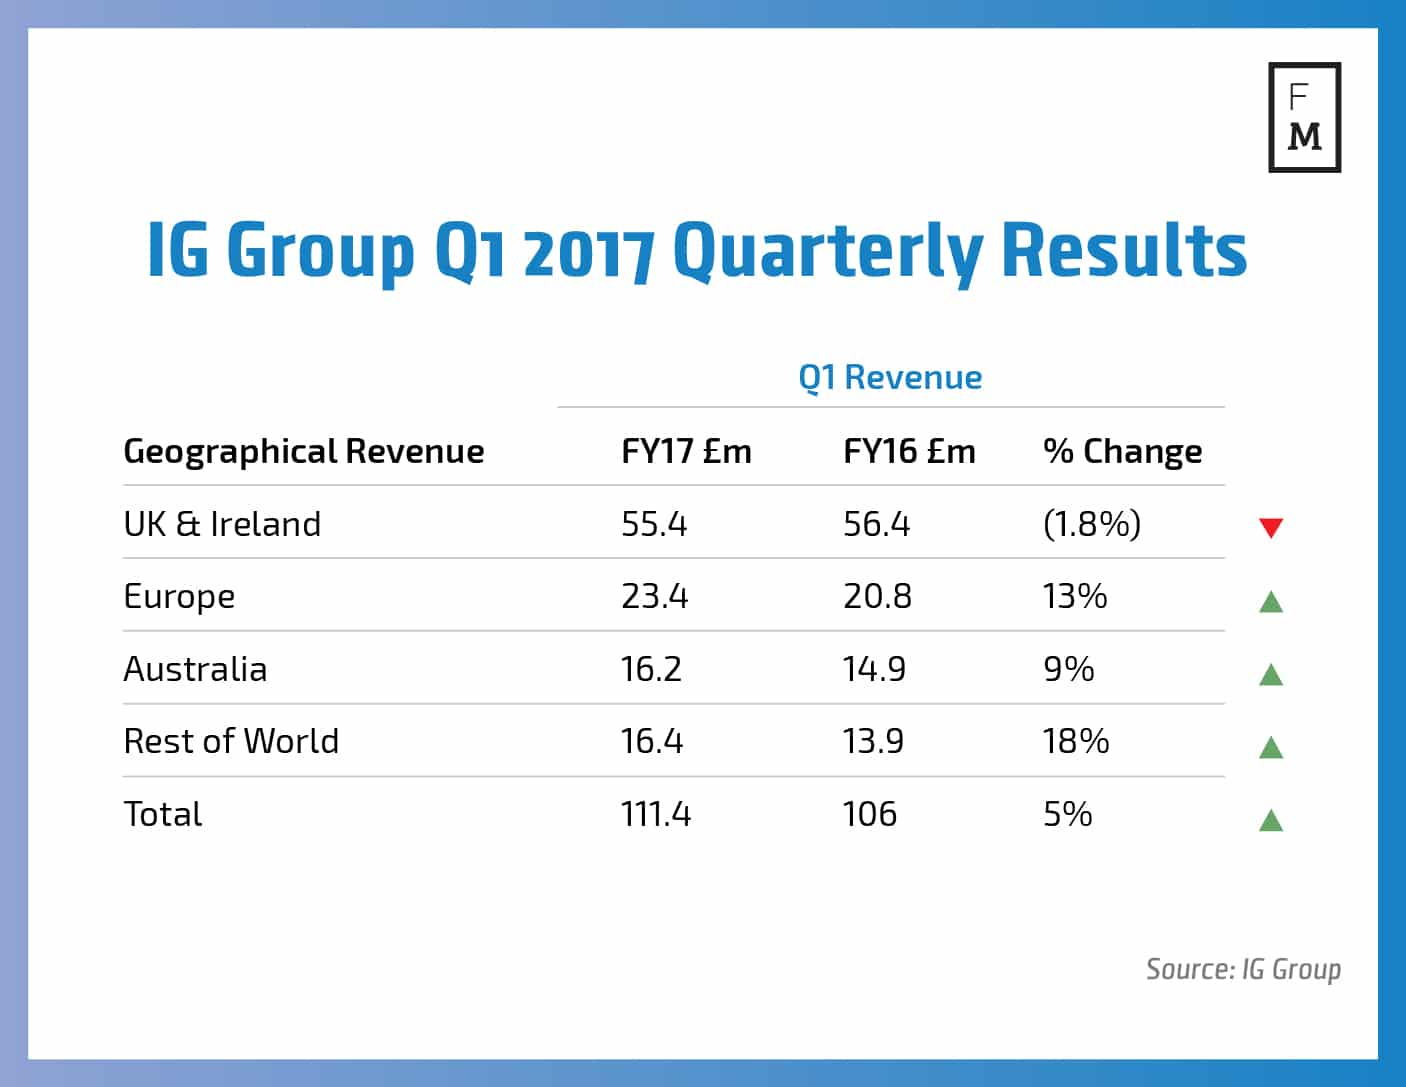 IG Group Q1 2016 Quarterly Results